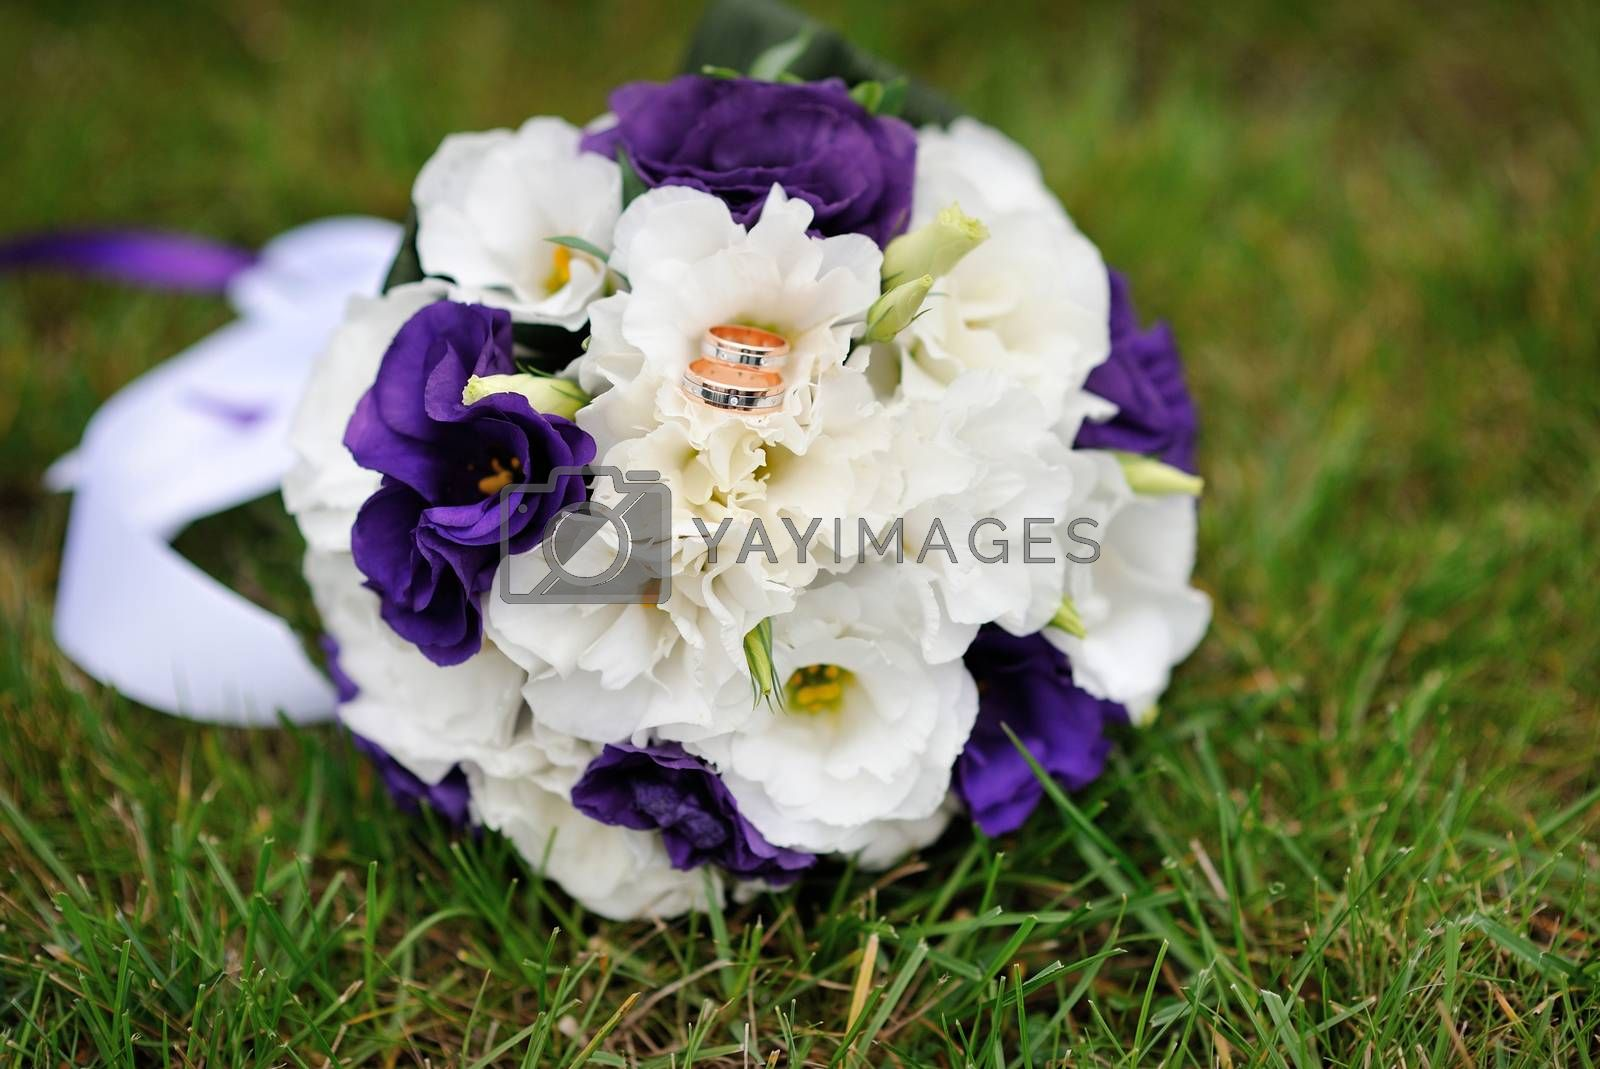 beautiful bridal bouquet lying on the grass.